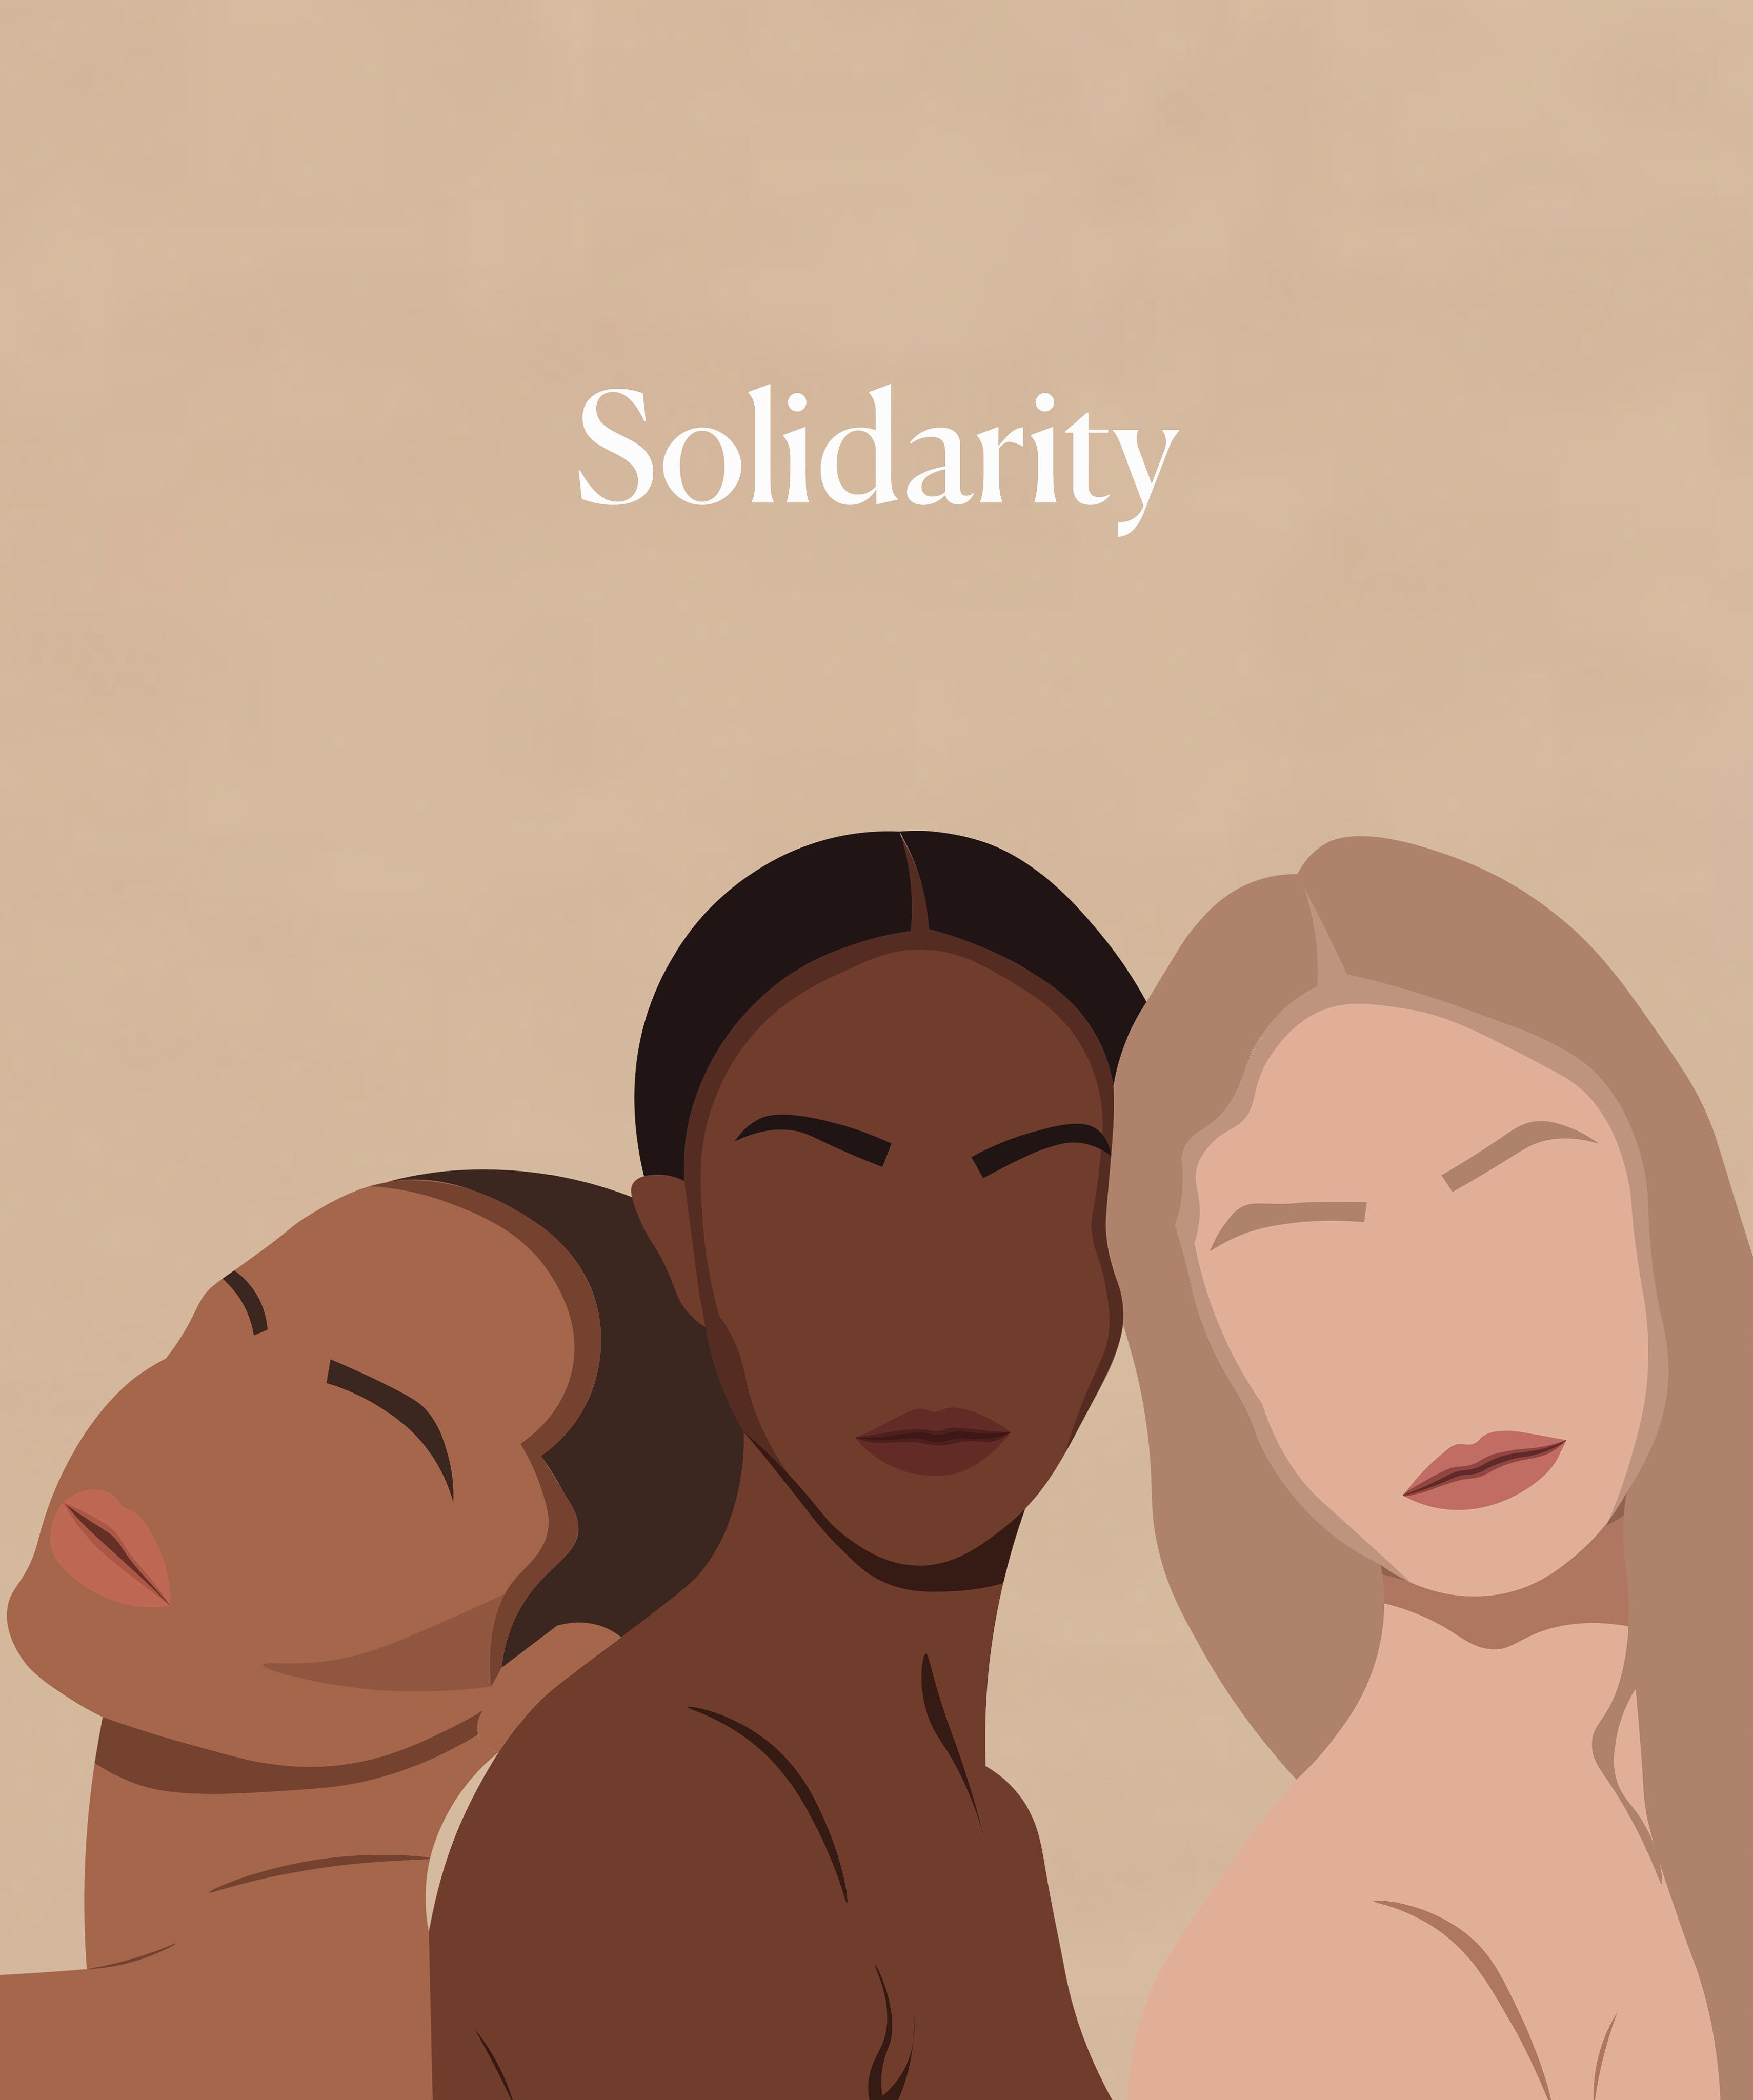 Solidarity With Black Lives Matter In 2020 Black Lives Matter Poster Black Lives Matter Art Black Girl Art